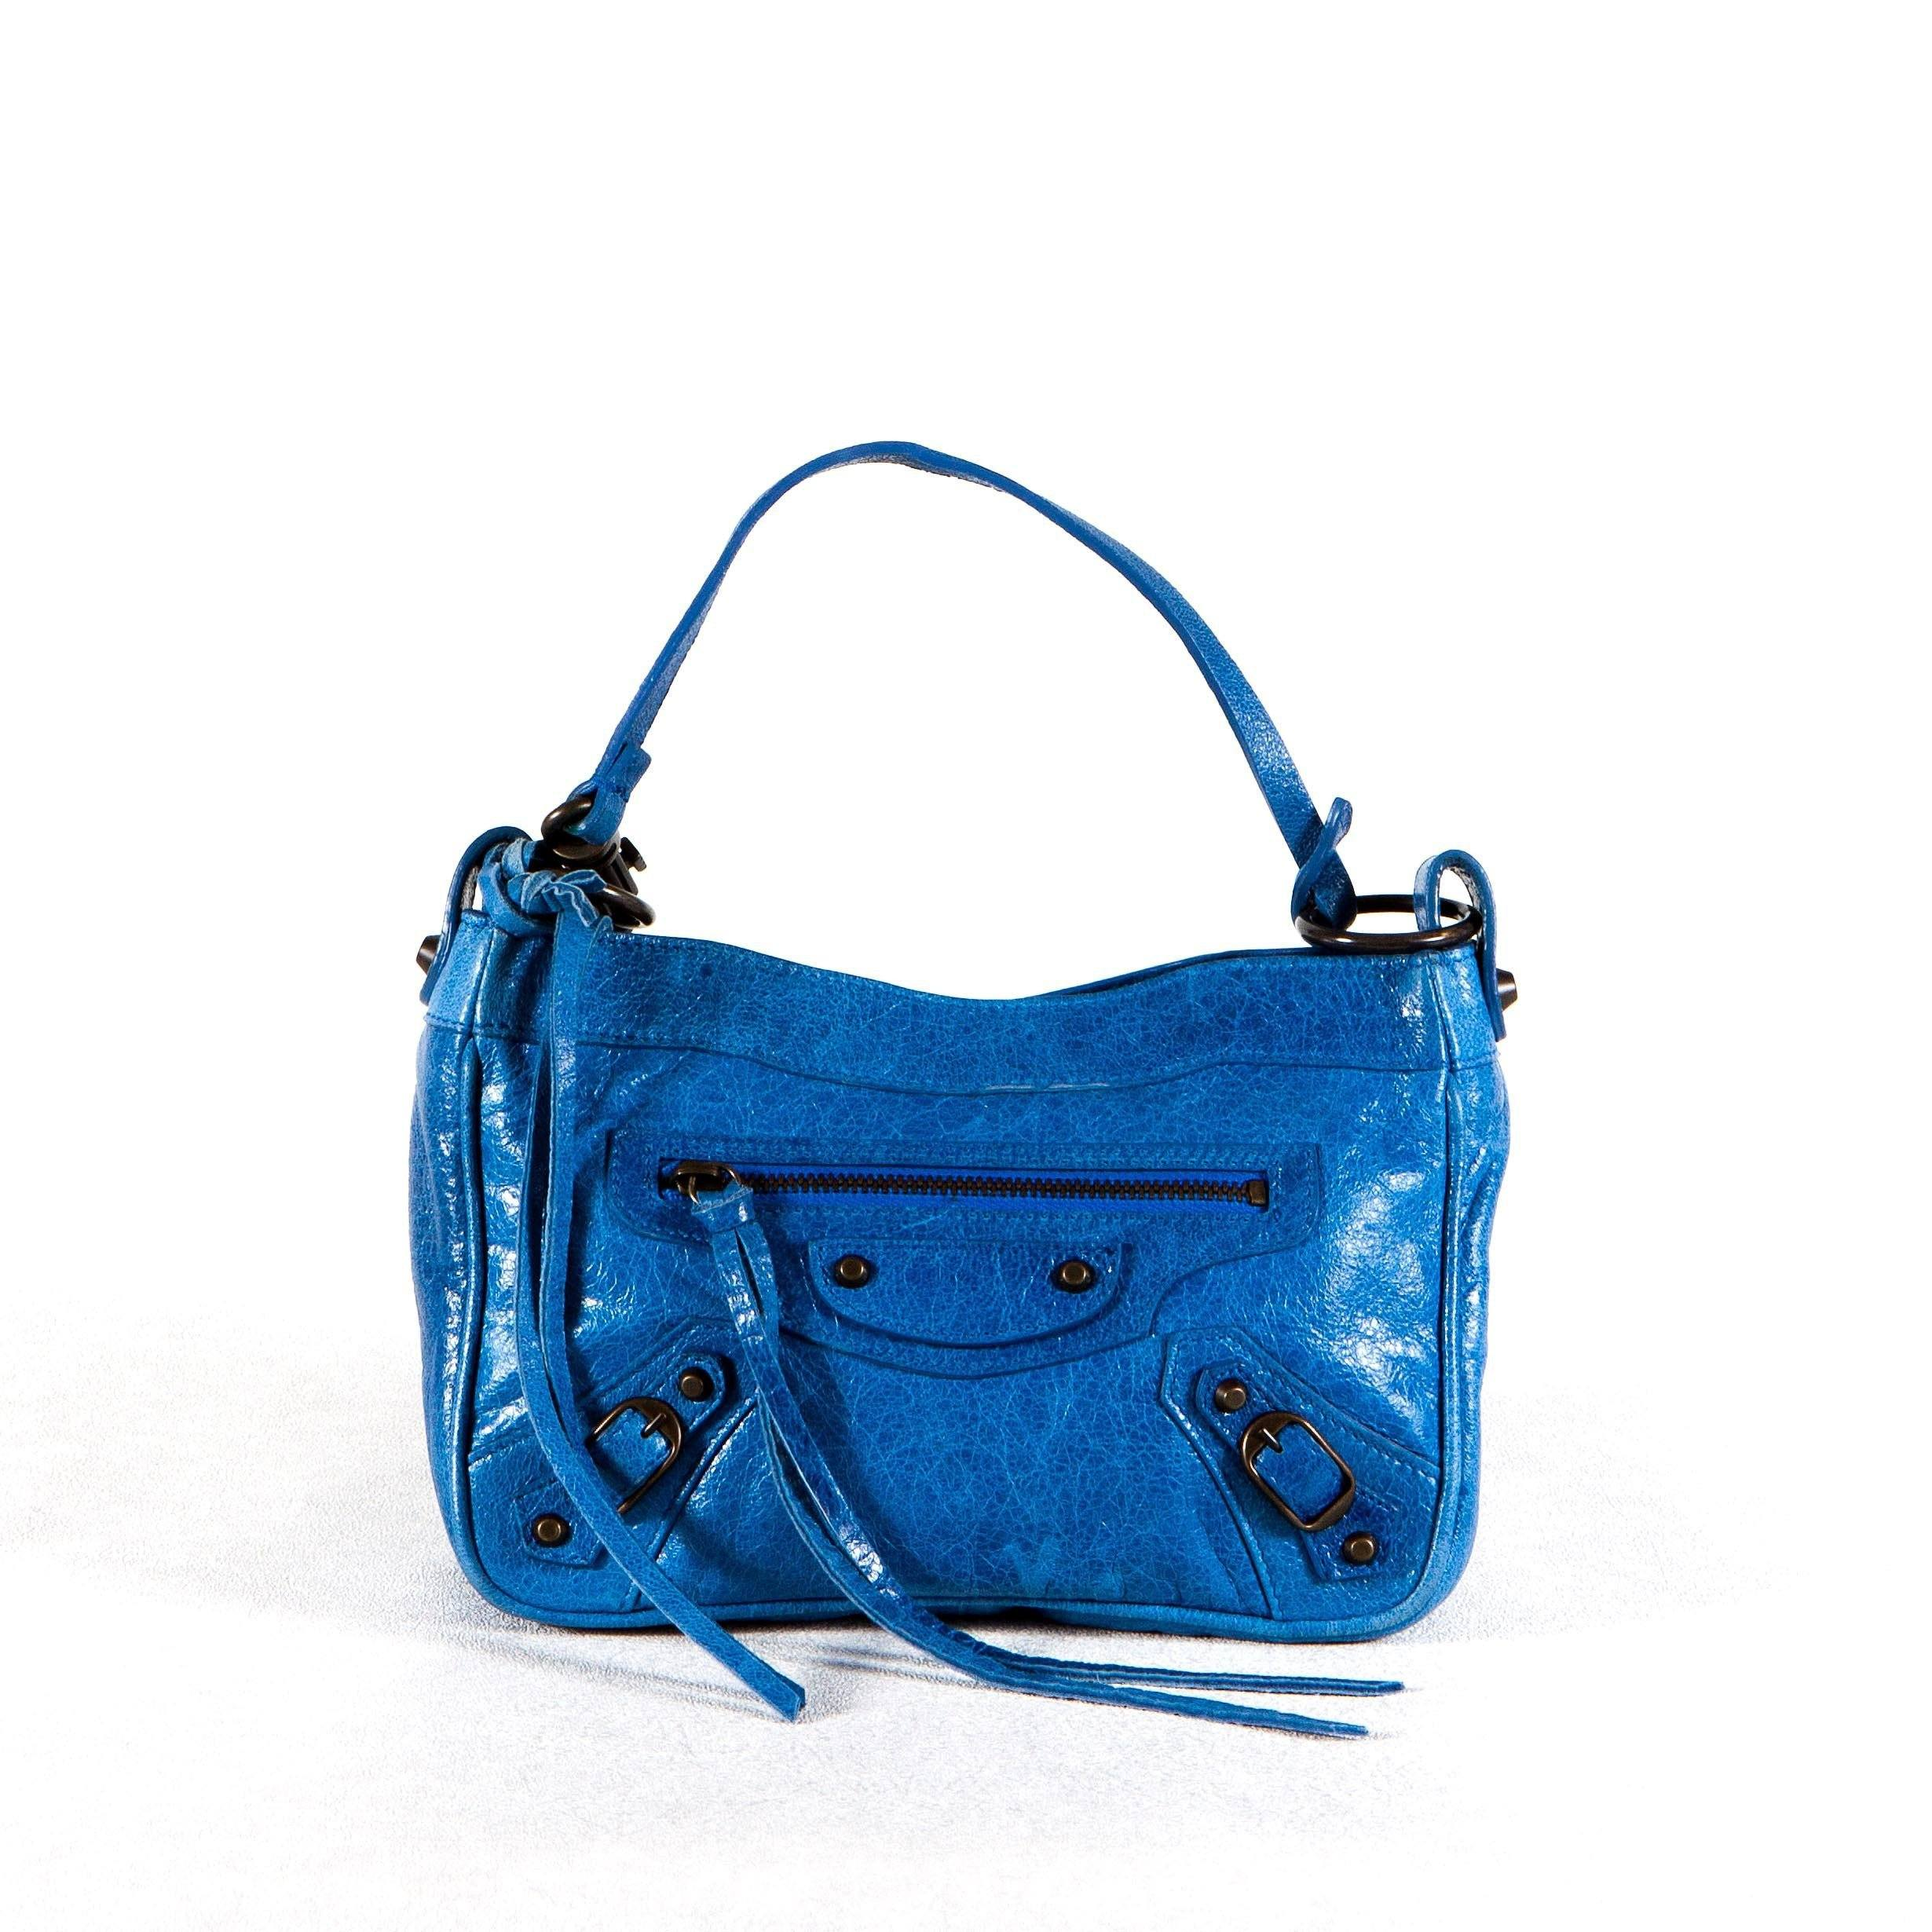 Balenciaga Leather Small Blue Bag